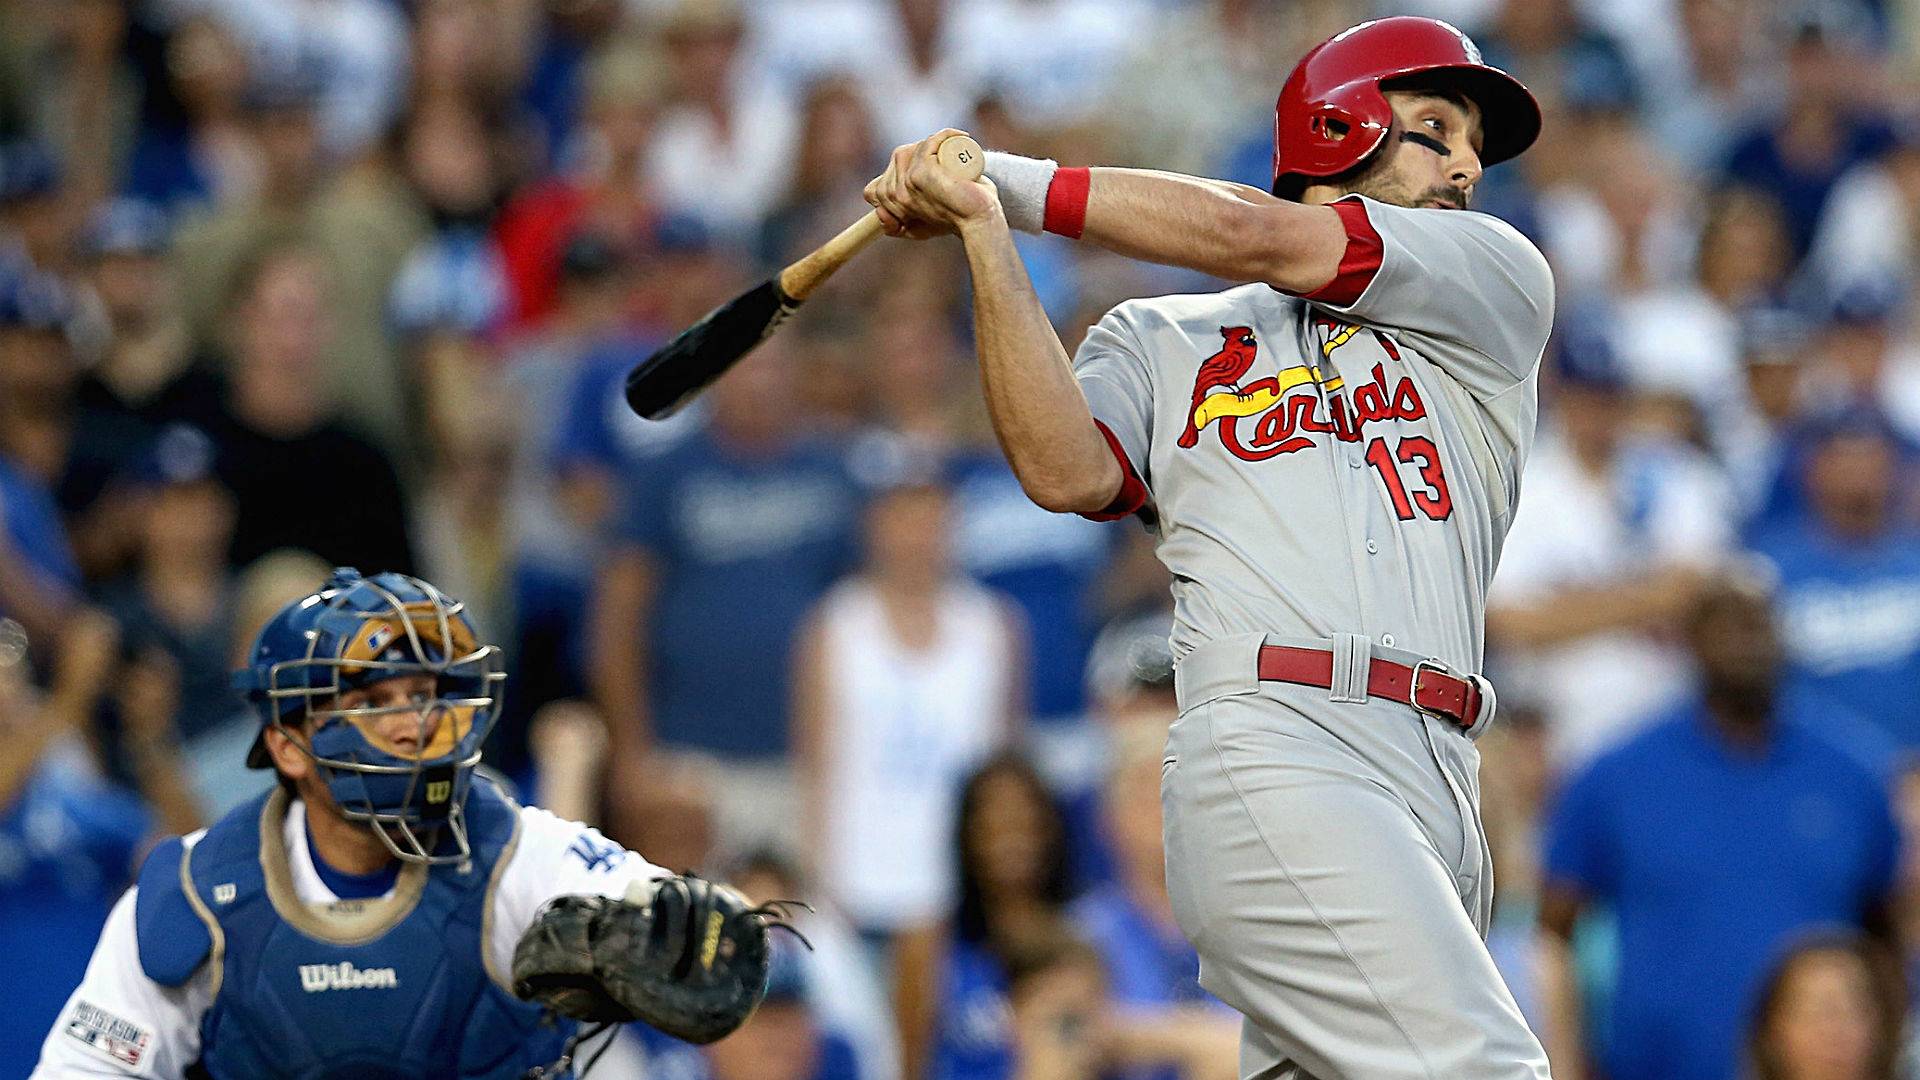 MLB odds and picks – Dodgers, Cardinals renew rivalry in first meeting of season